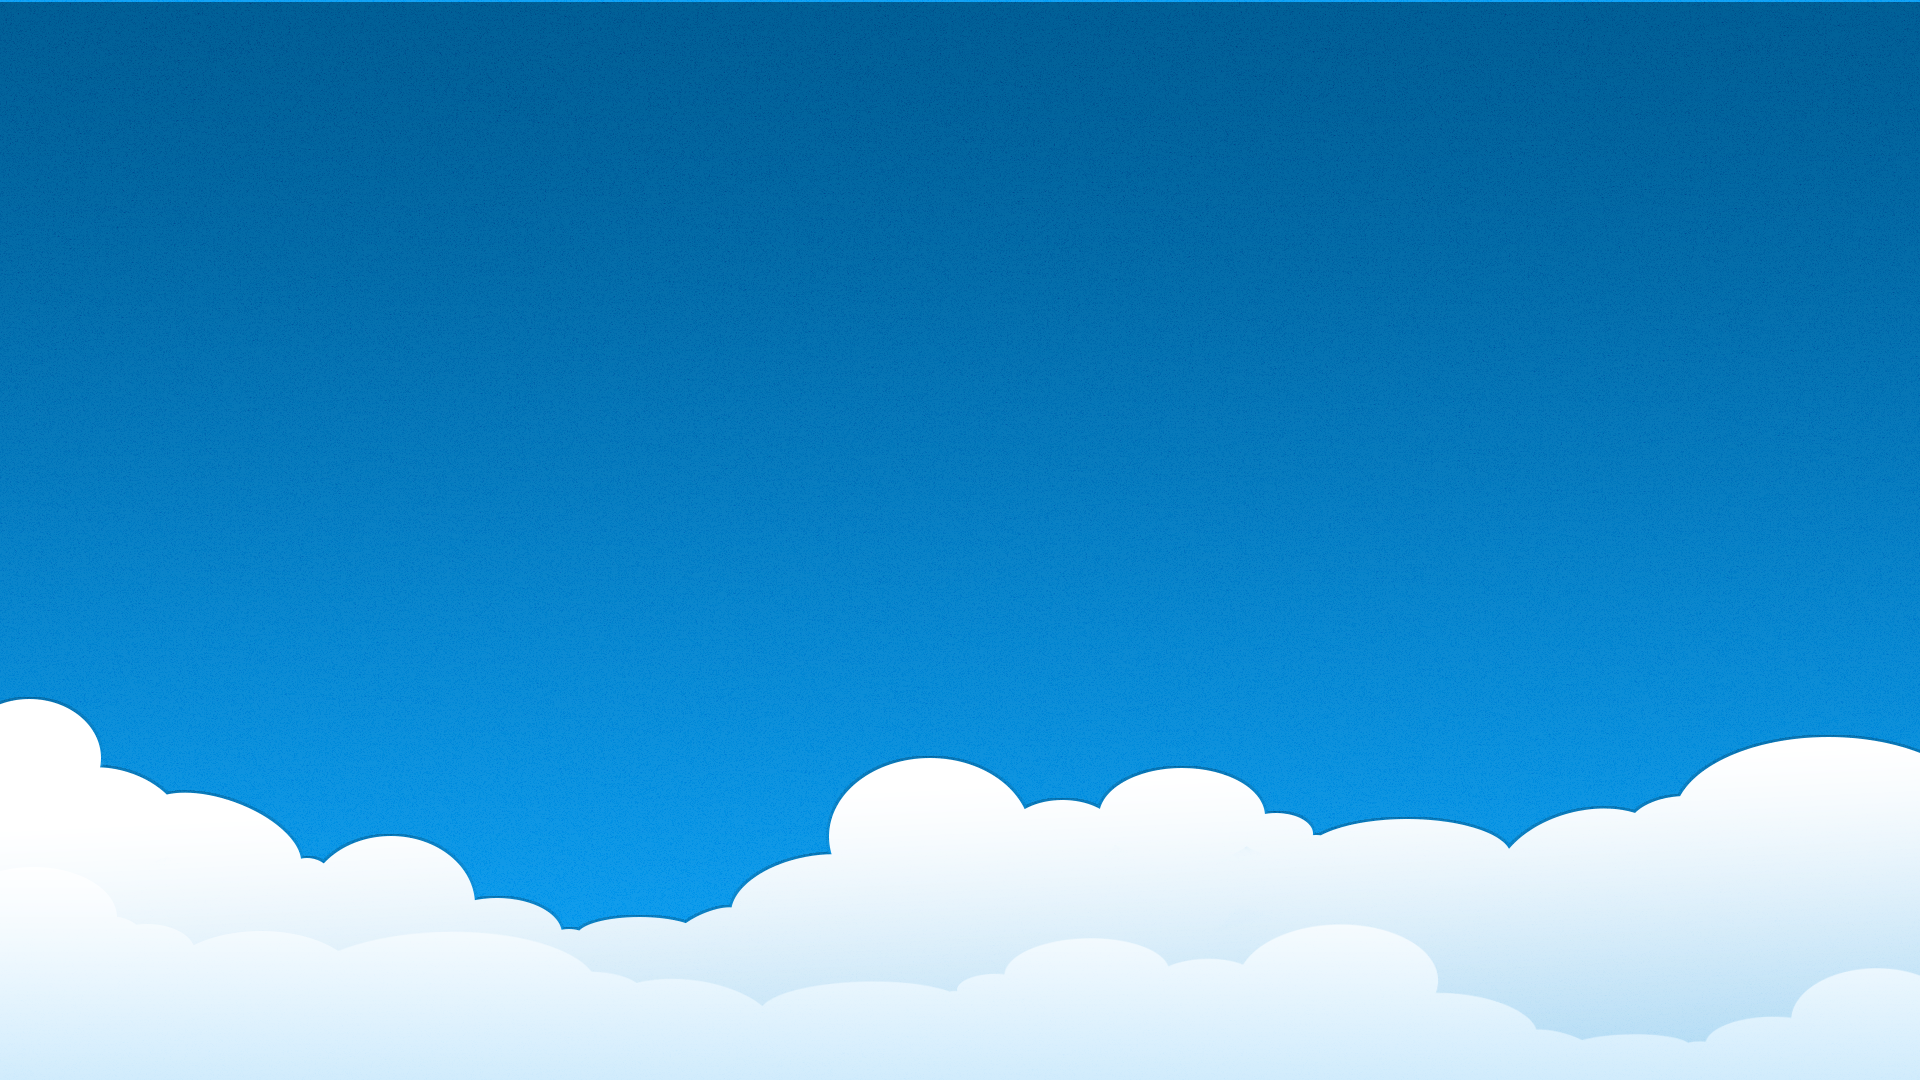 background awan vektor png 1920x1080 download hd wallpaper wallpapertip background awan vektor png 1920x1080